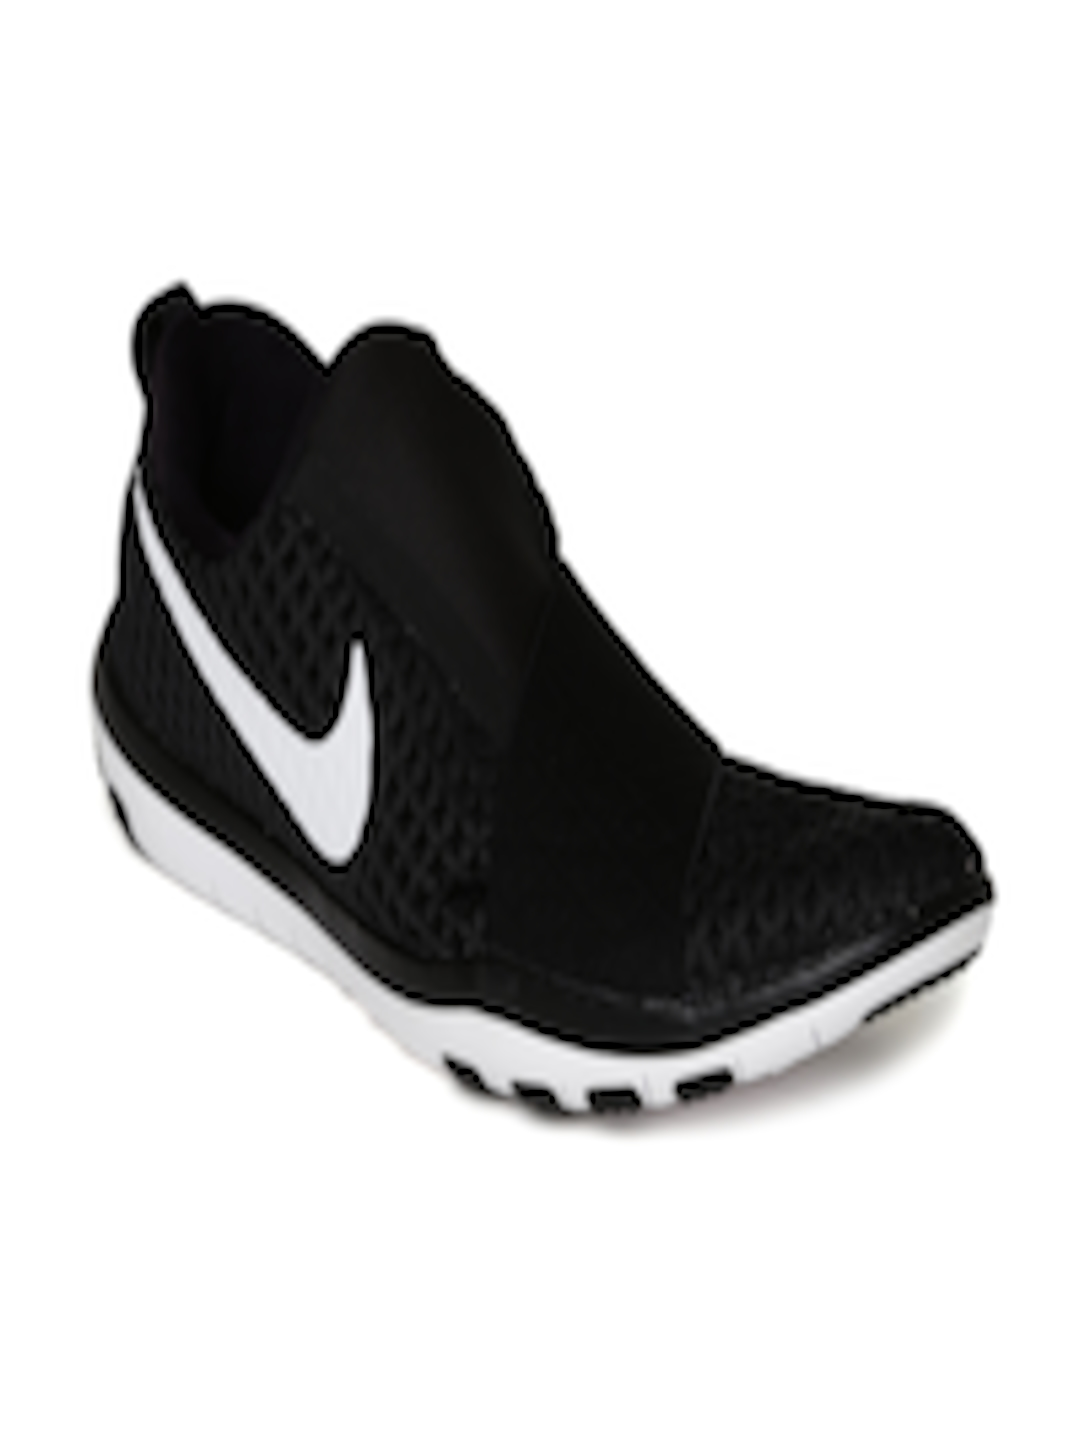 f230fc1ec4615 Buy Nike Women Black Free Connect Training Shoes - Sports Shoes for Women  1421014